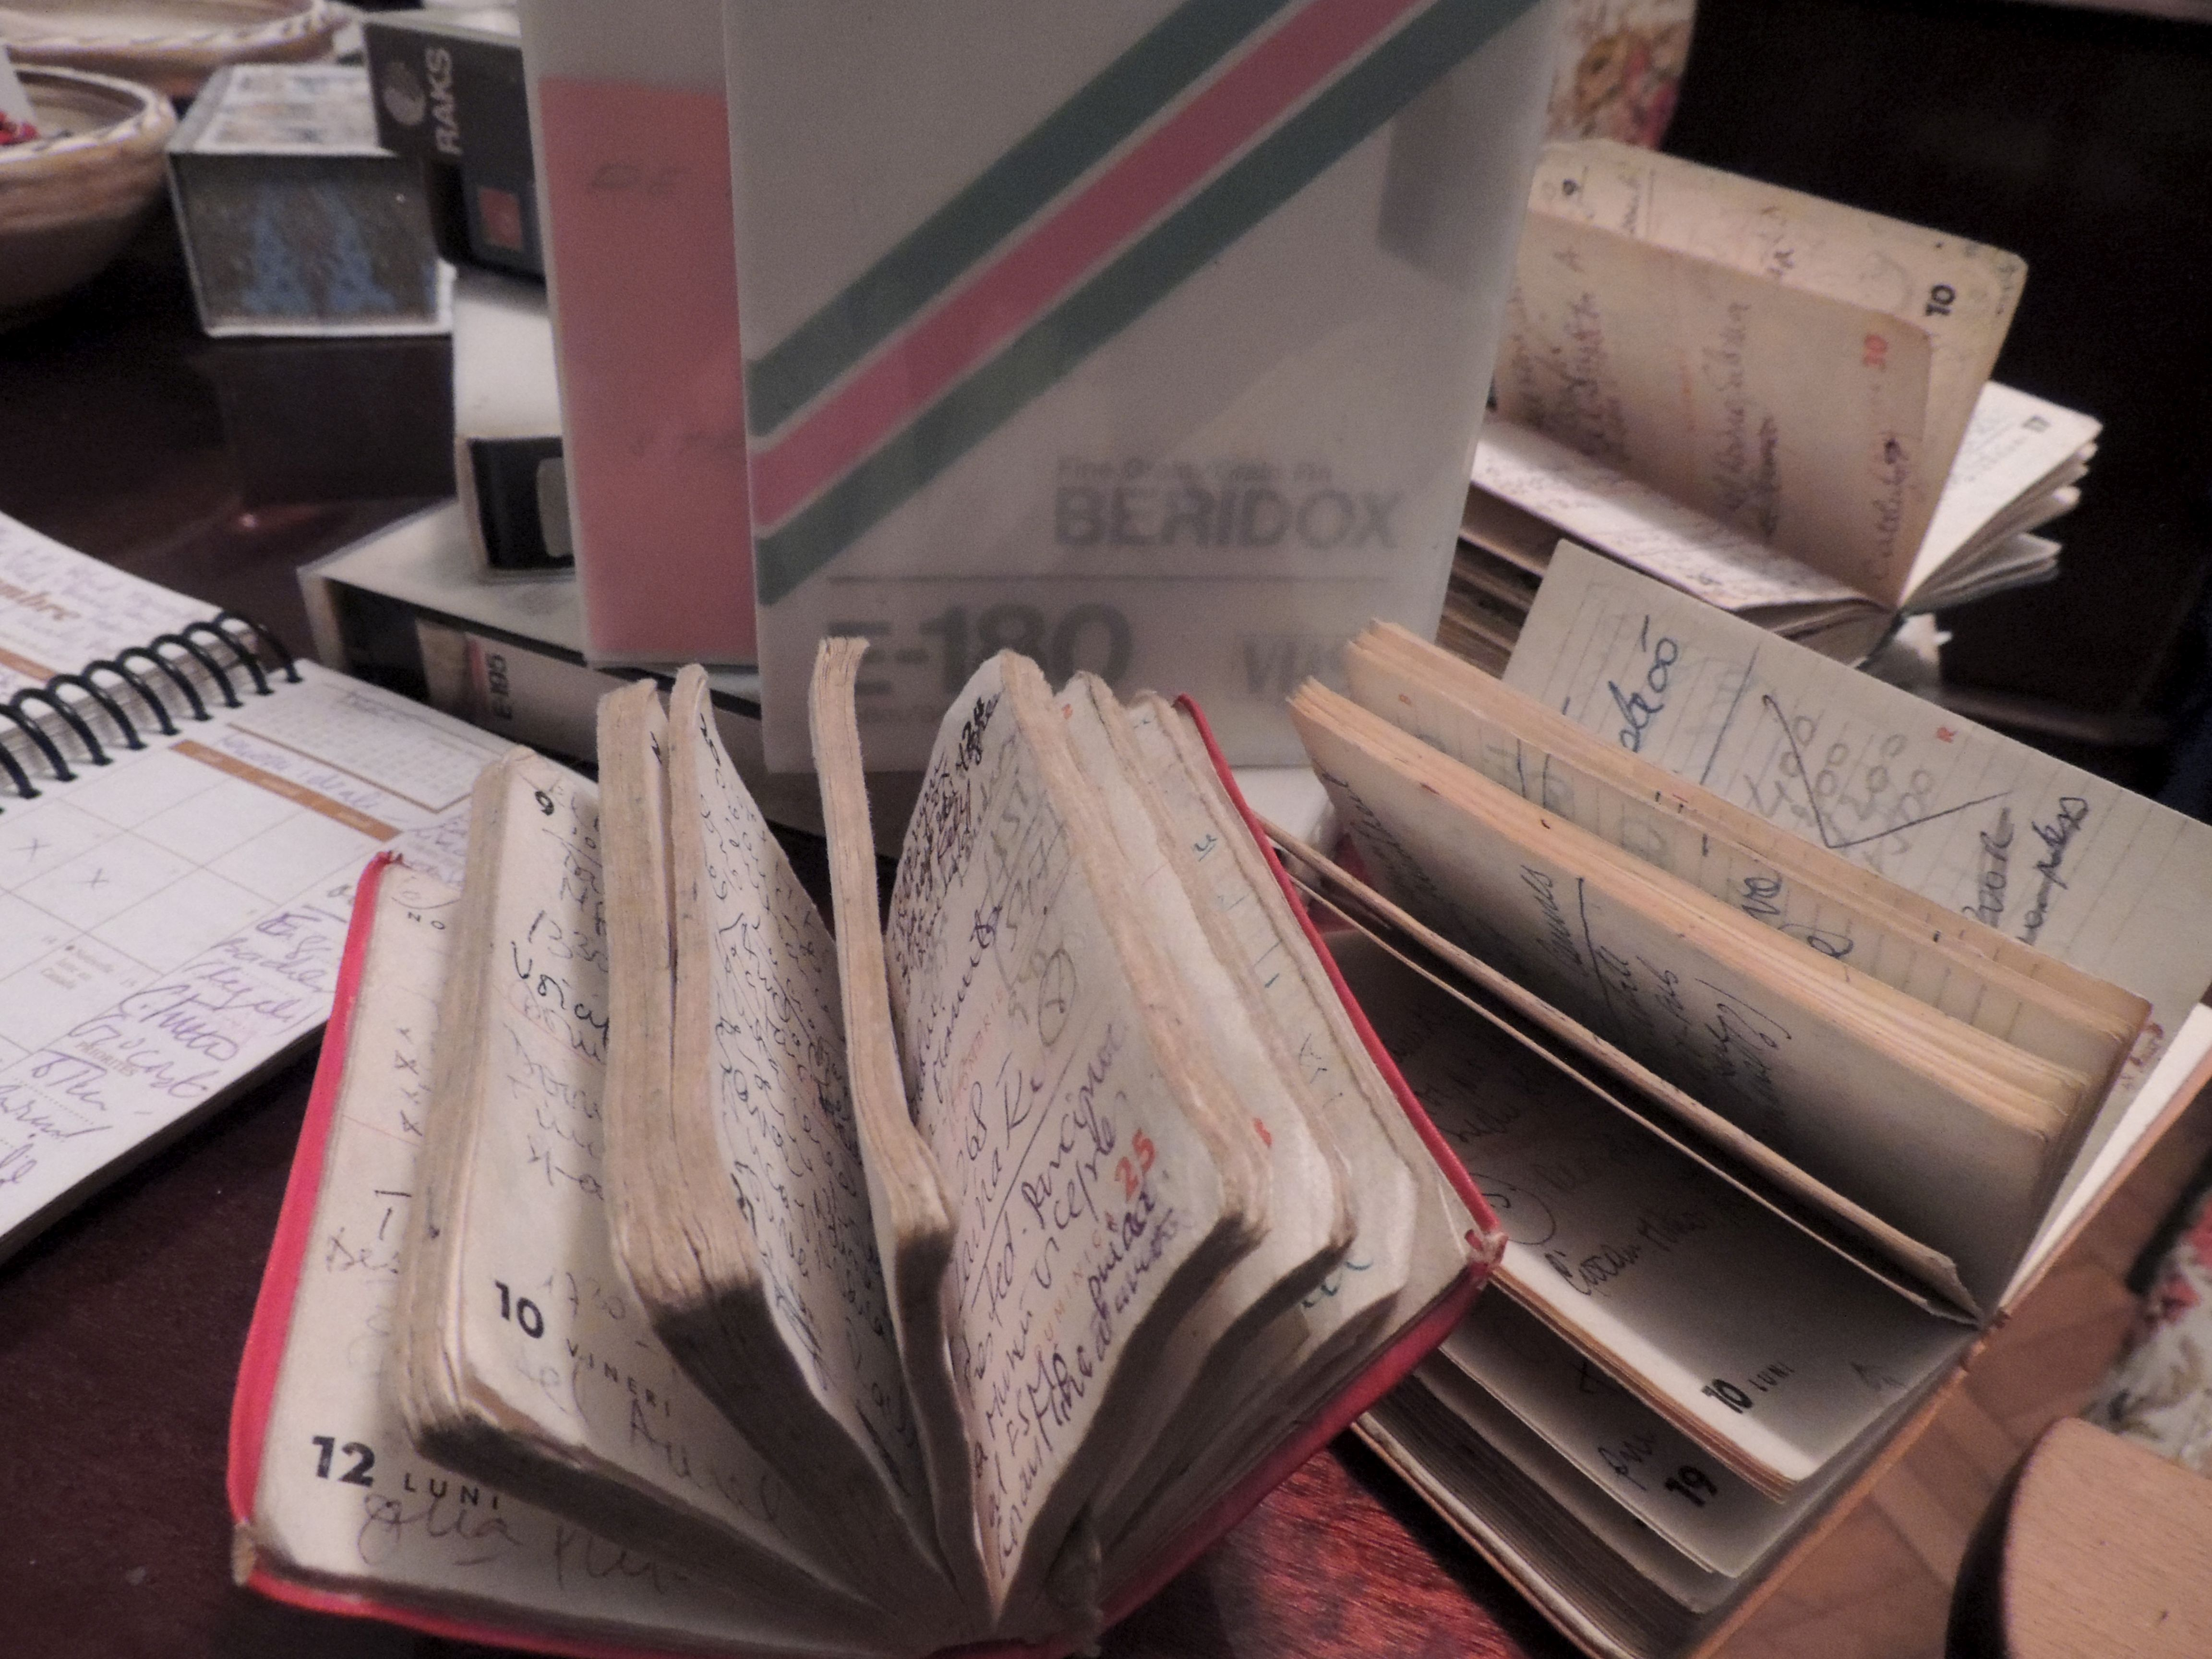 Notebooks including all the titles of the films which Irina Margareta Nistor translated